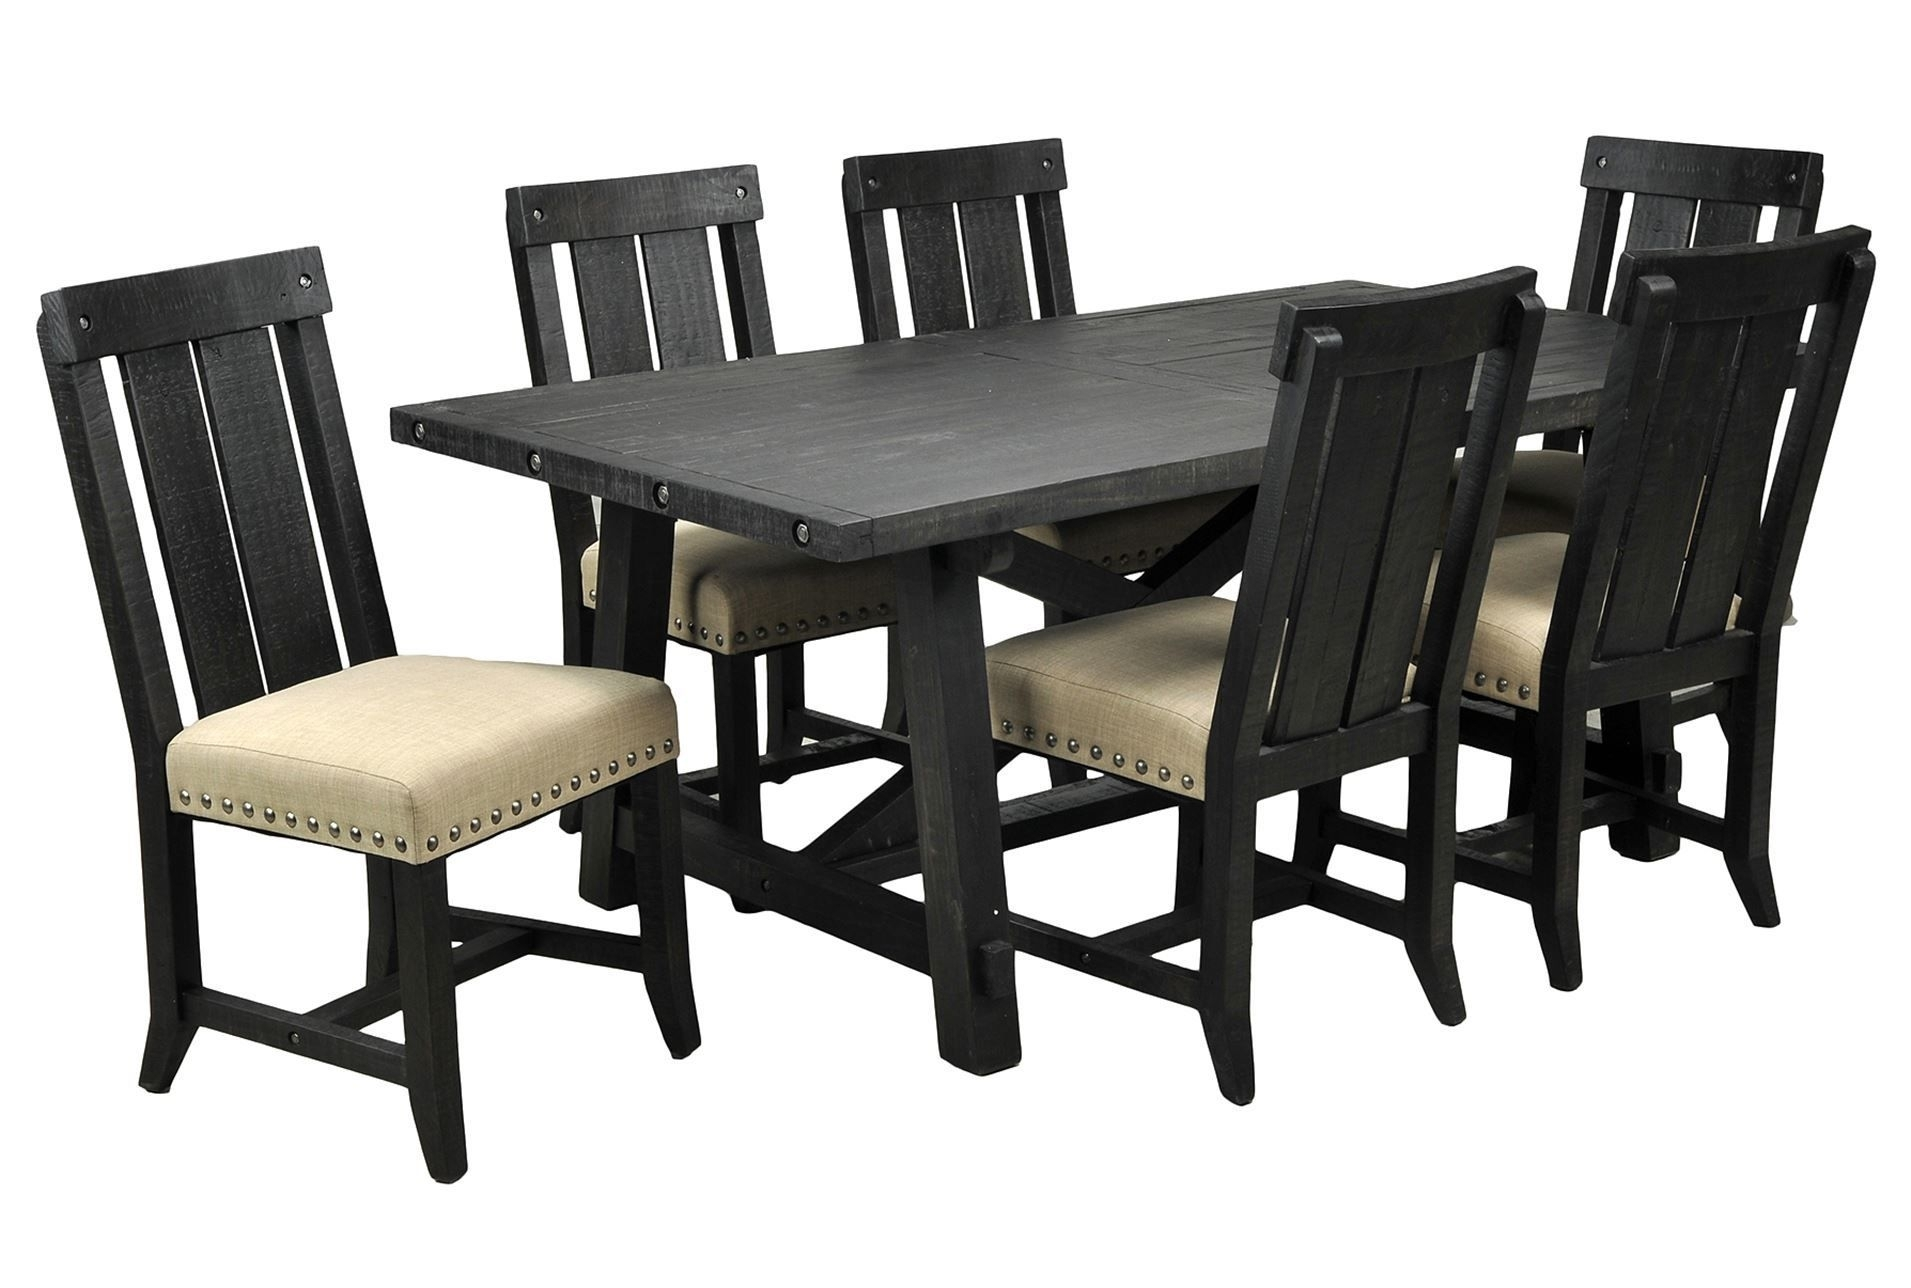 Jaxon 7 Piece Rectangle Dining Set W/wood Chairs | For The House I Within 2017 Wyatt 7 Piece Dining Sets With Celler Teal Chairs (Image 12 of 20)